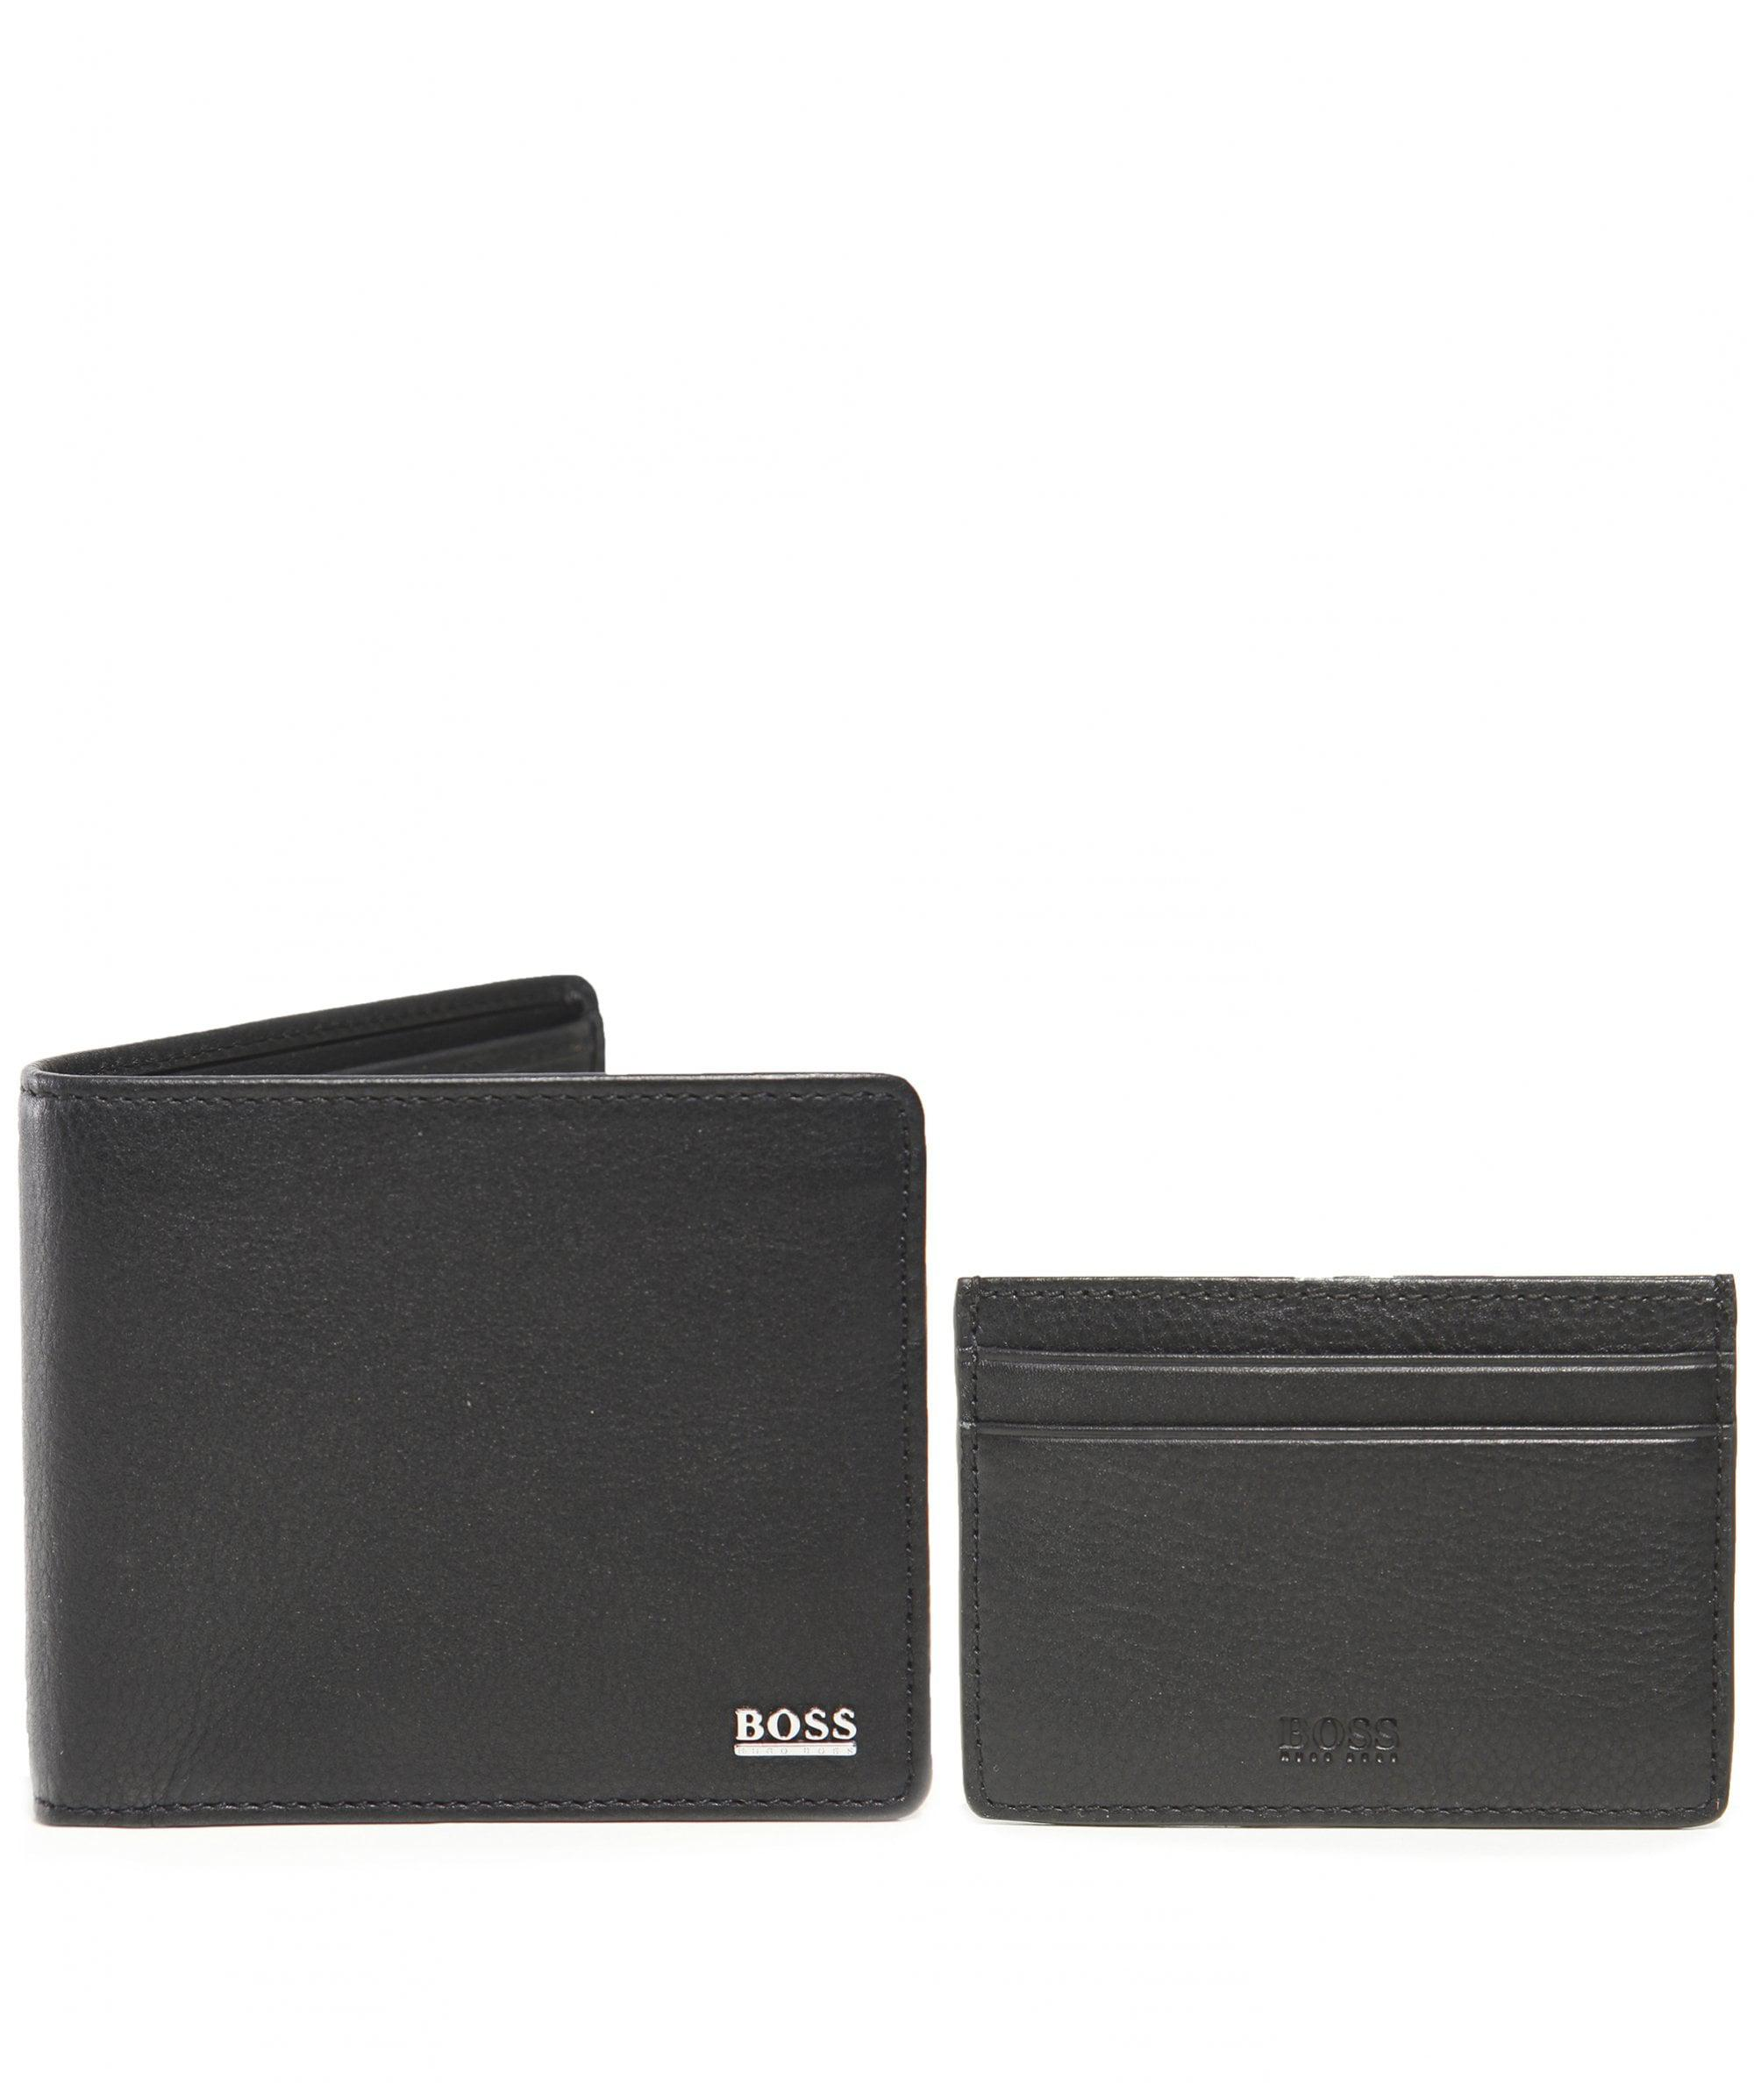 9fc418ee224 BOSS - Black Leather Wallet And Card Holder Gift Set for Men - Lyst. View  fullscreen